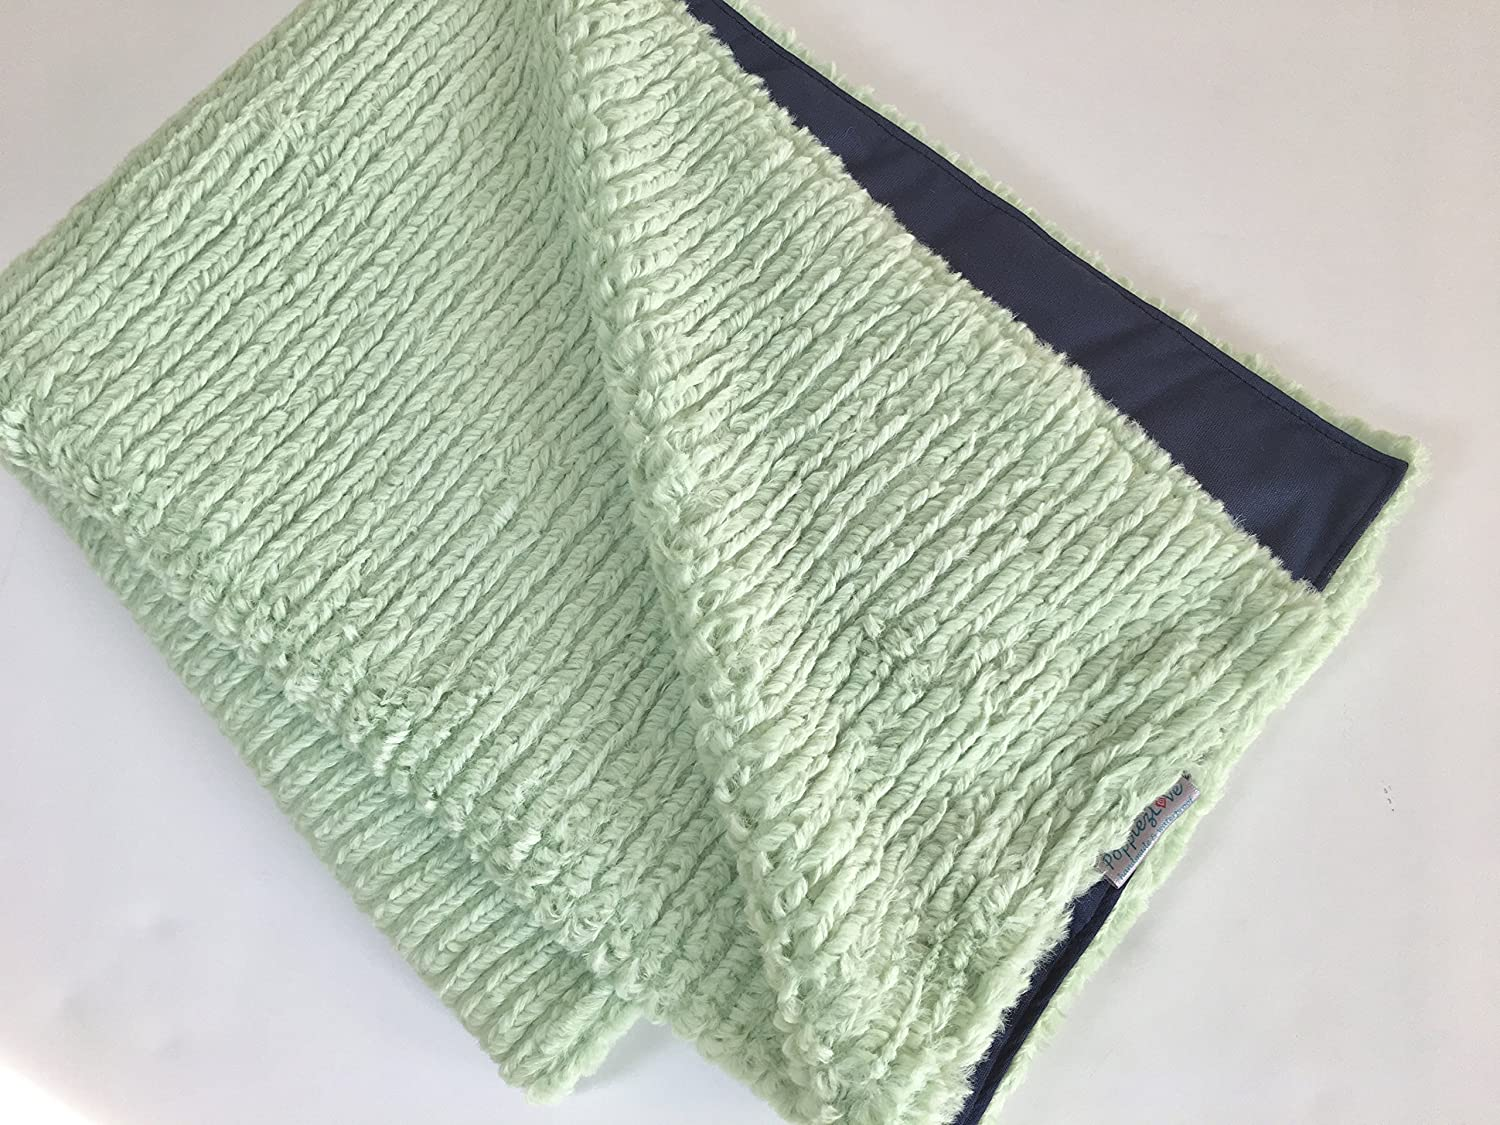 Waterproof Pet Blanket- Super Thick and Soft Chenille Minky Mint Green and Navy